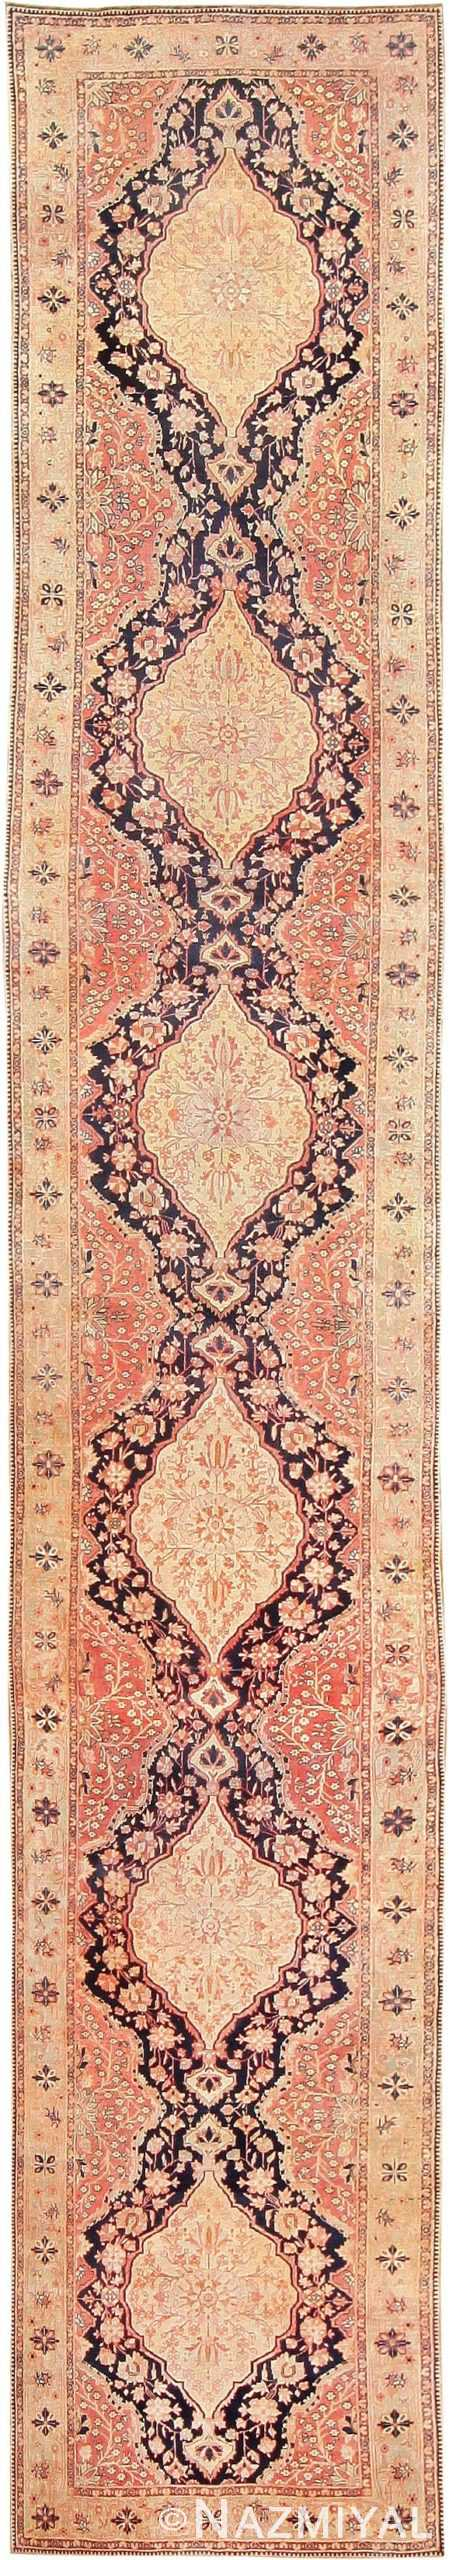 Antique Mohtashem Kashan Persian Runner 47499 Nazmiyal